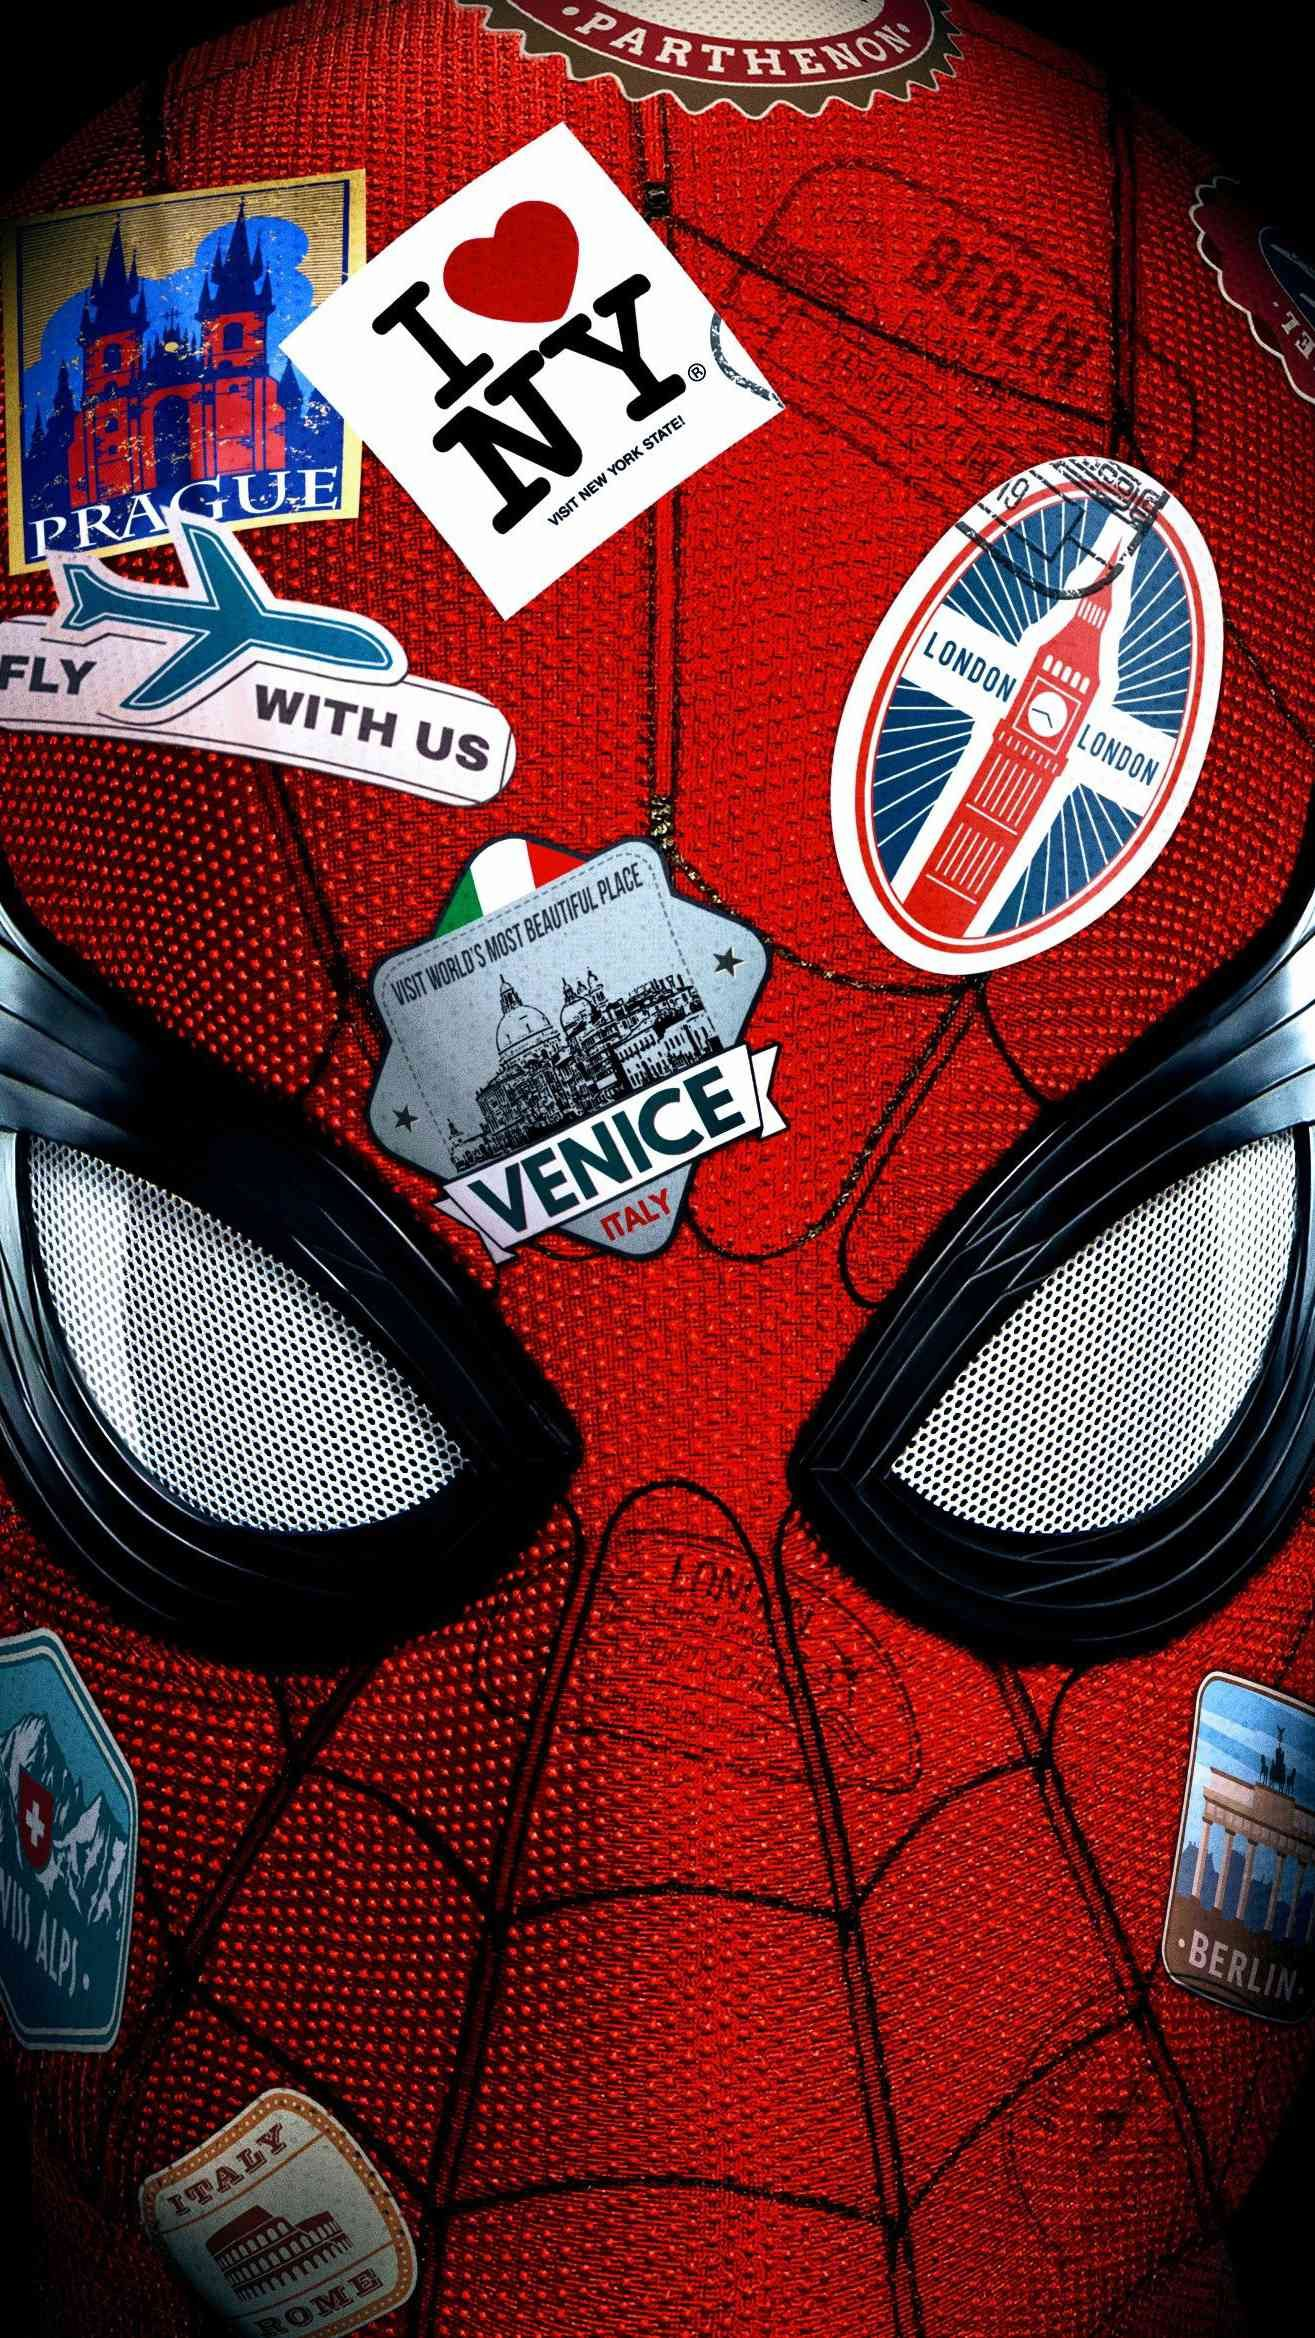 Spiderman Far From Home Poster Iphone Wallpaper Marvel Comics Wallpaper Spiderman Avengers Wallpaper